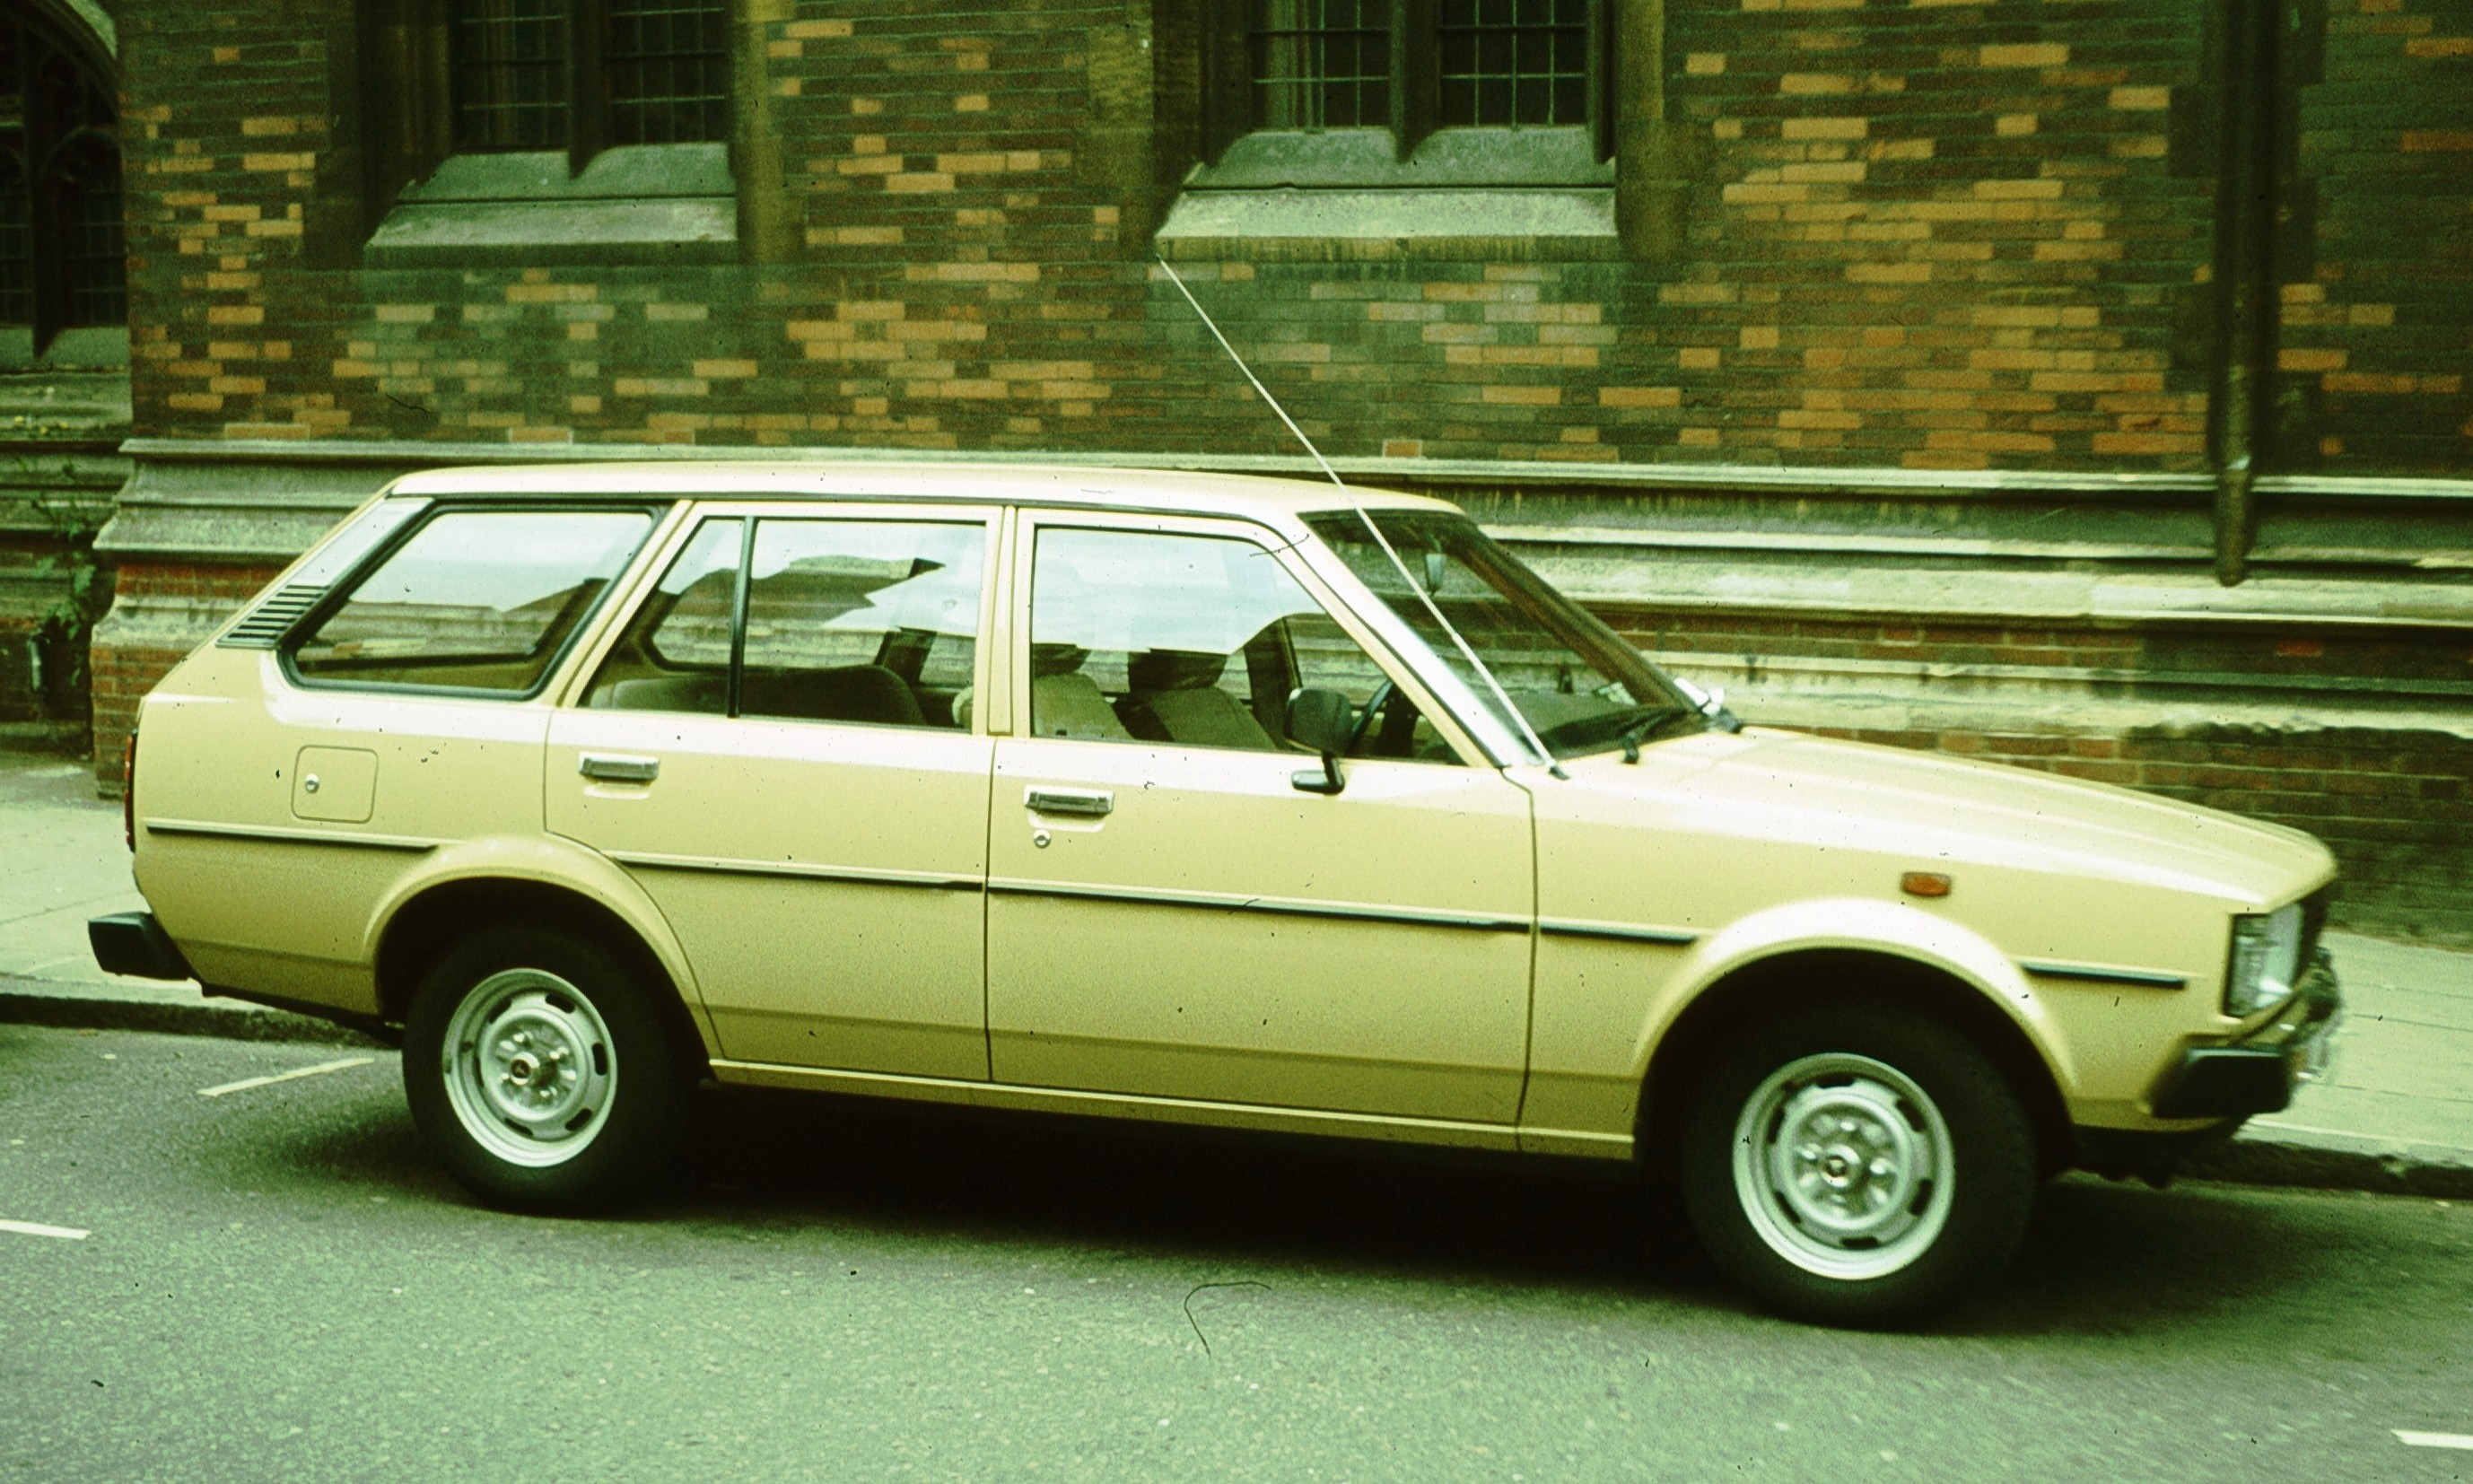 File:Toyota Corolla E70 Estate Cambridge.jpg - Wikimedia Commons